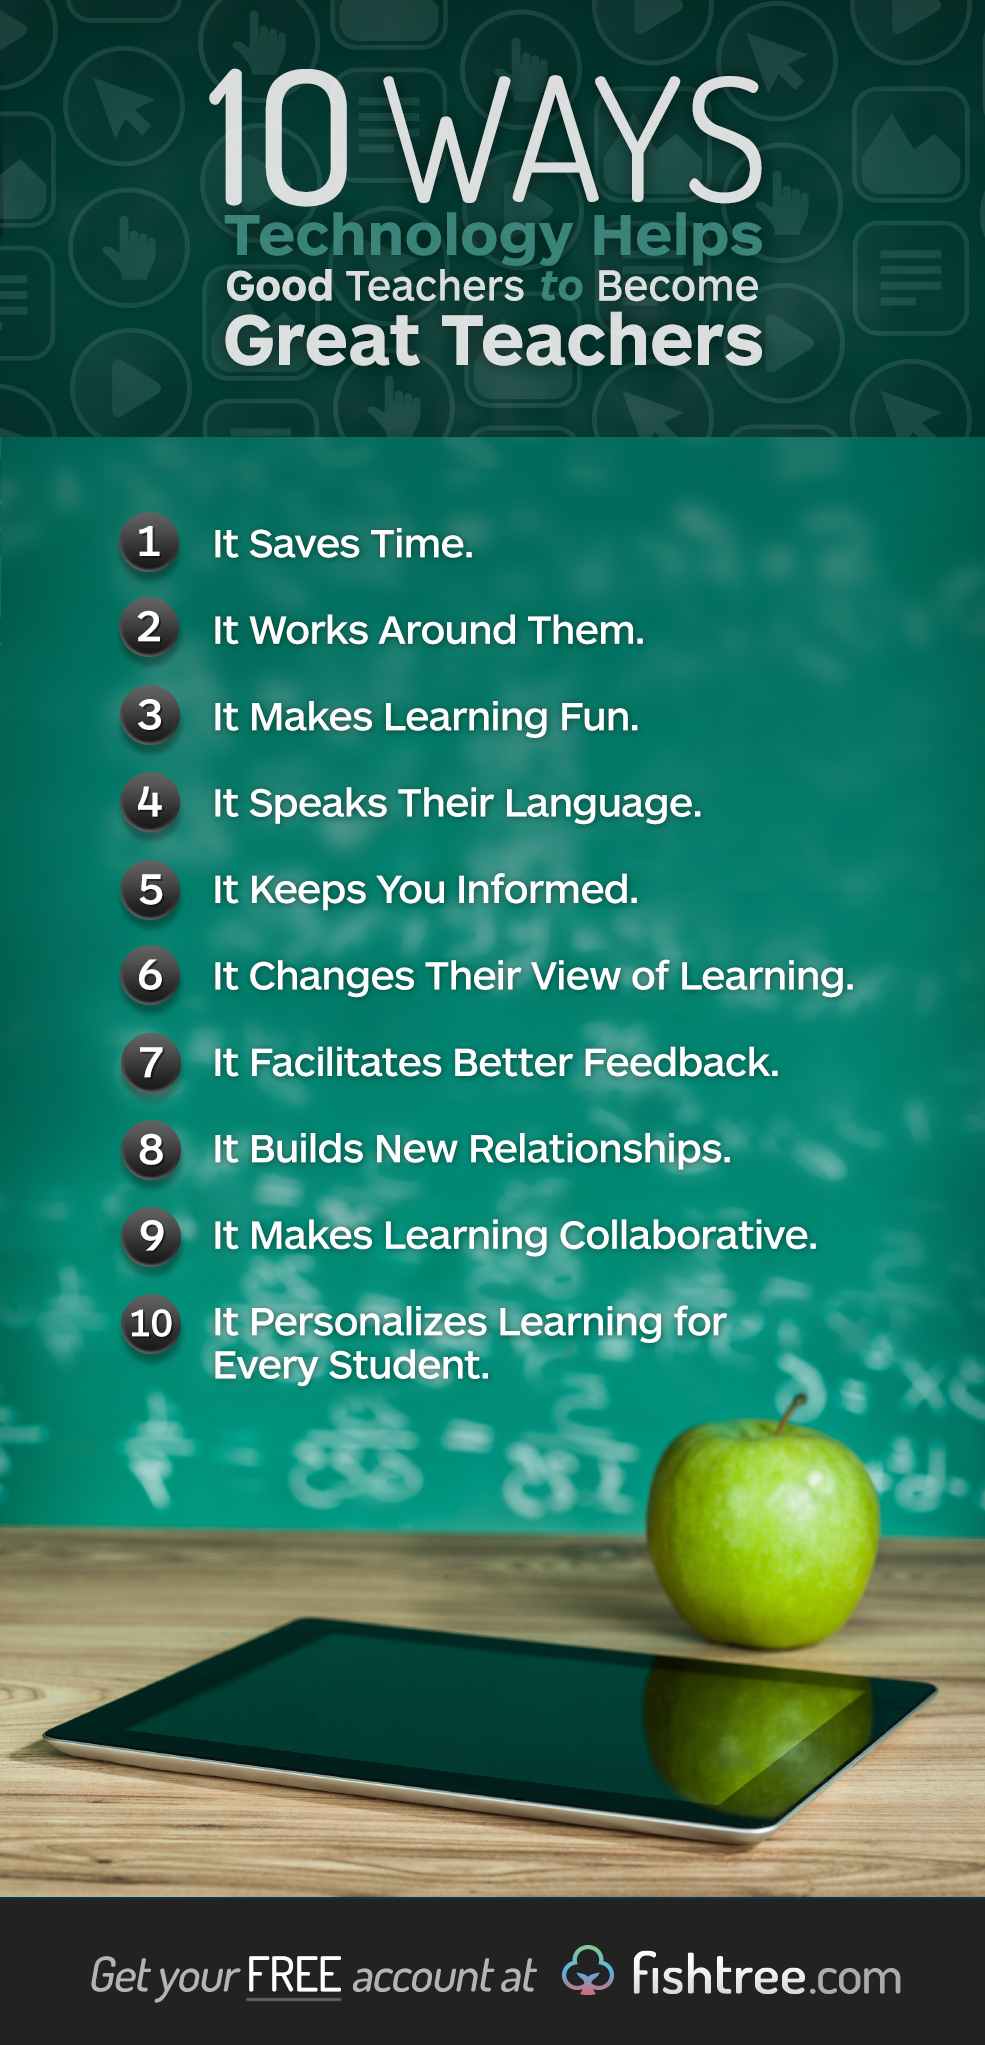 10 Ways Technology Helps Good Teachers to Become Great Teachers